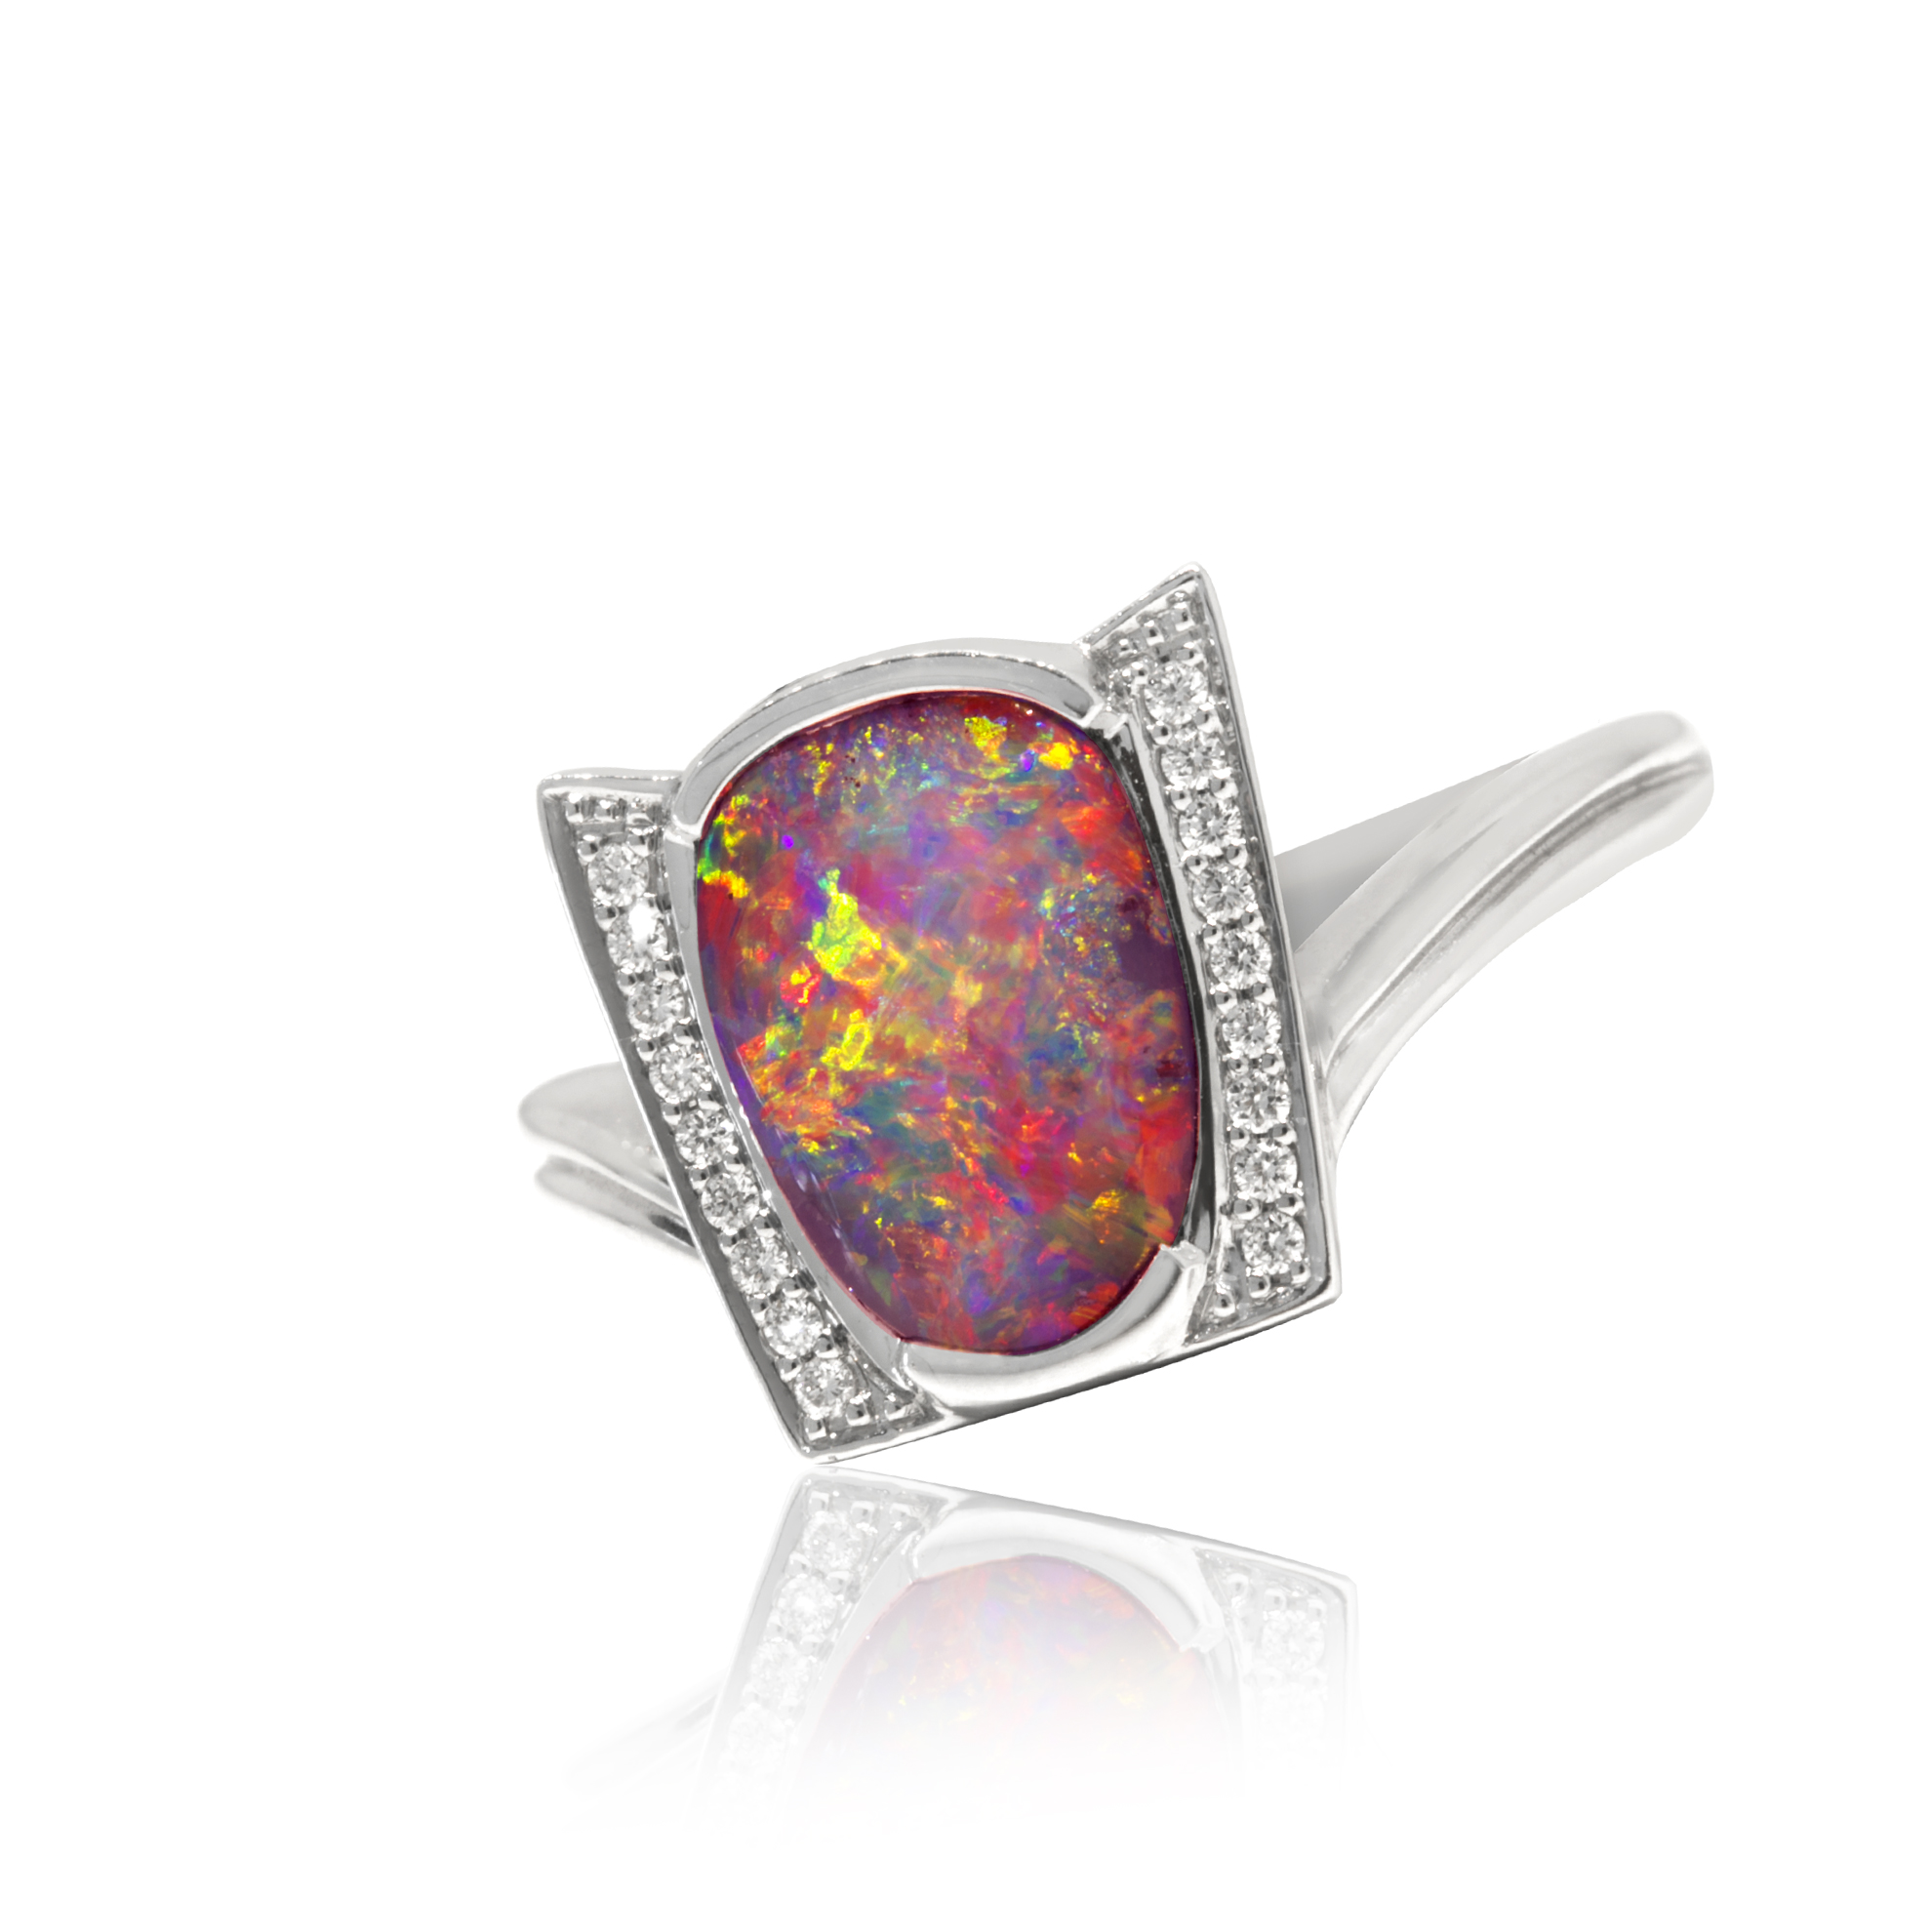 gemstone iridescent with marquis scale gold white rings engagement jetter celebrate black pav subsampling false month arrival rubies the upscale article ring crop to australian boulder opal jewellery opals in of katherine